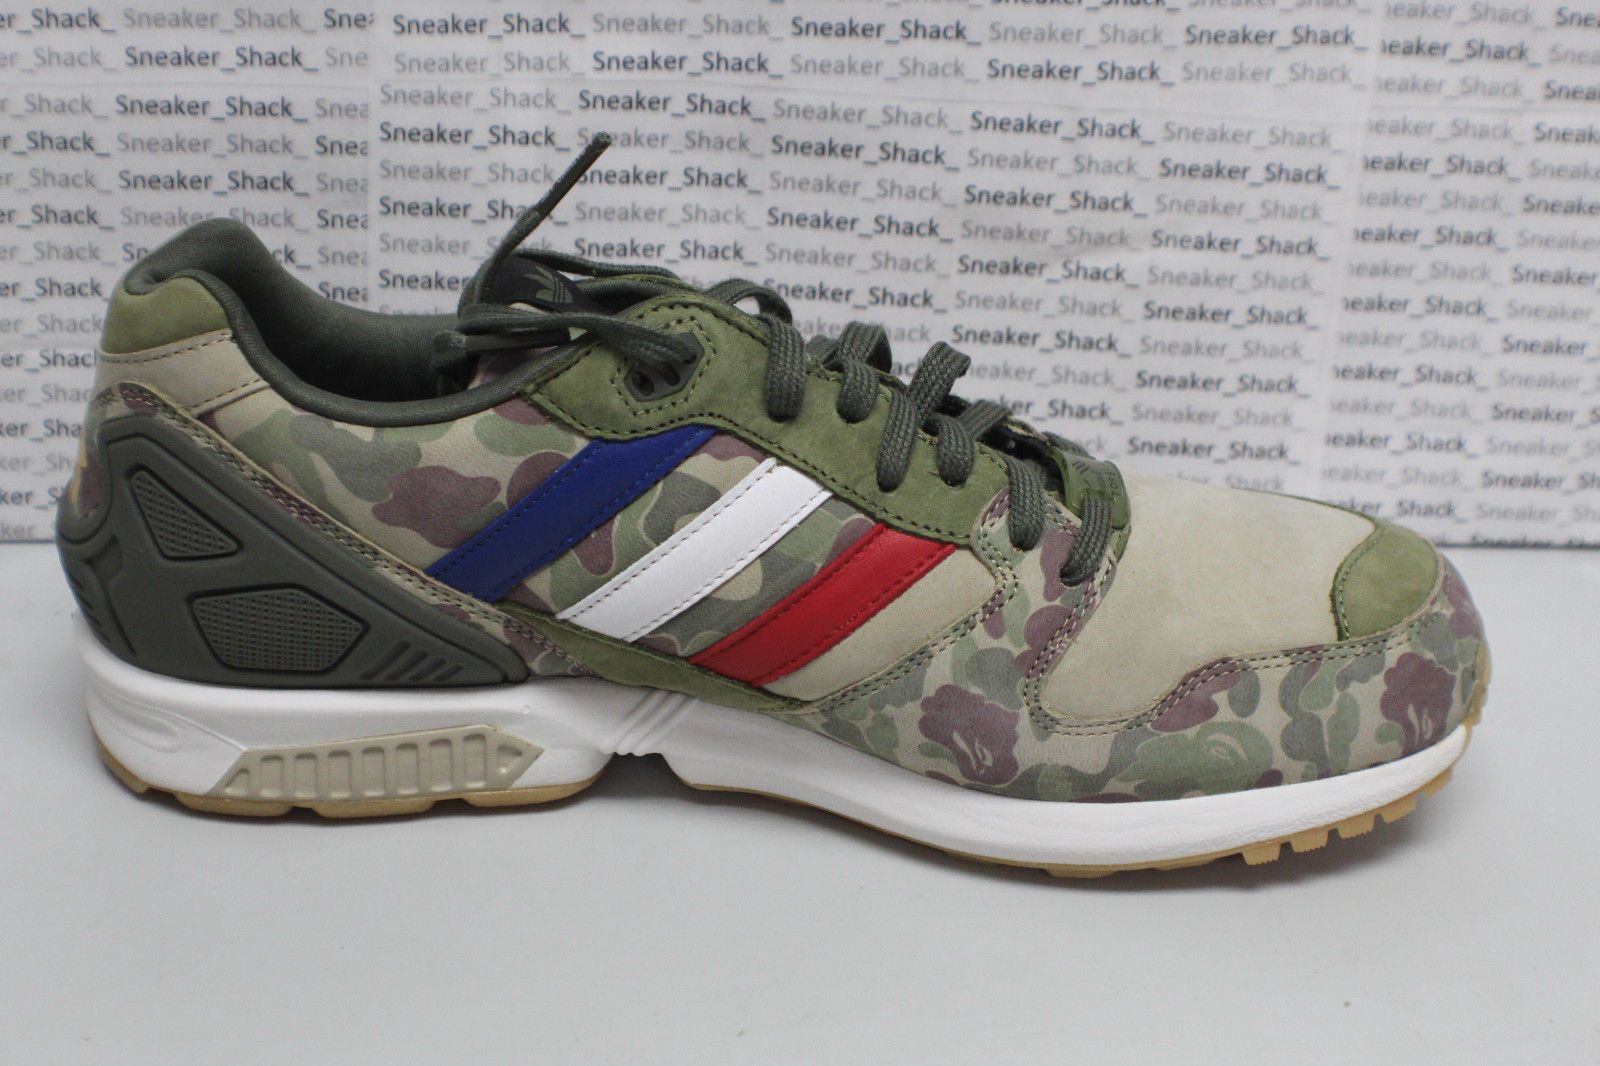 c6491f56bfe2 NEW DS Adidas Undefeated BAPE A Bathing Ape ZX 5000 Camo Vintage Sneakers